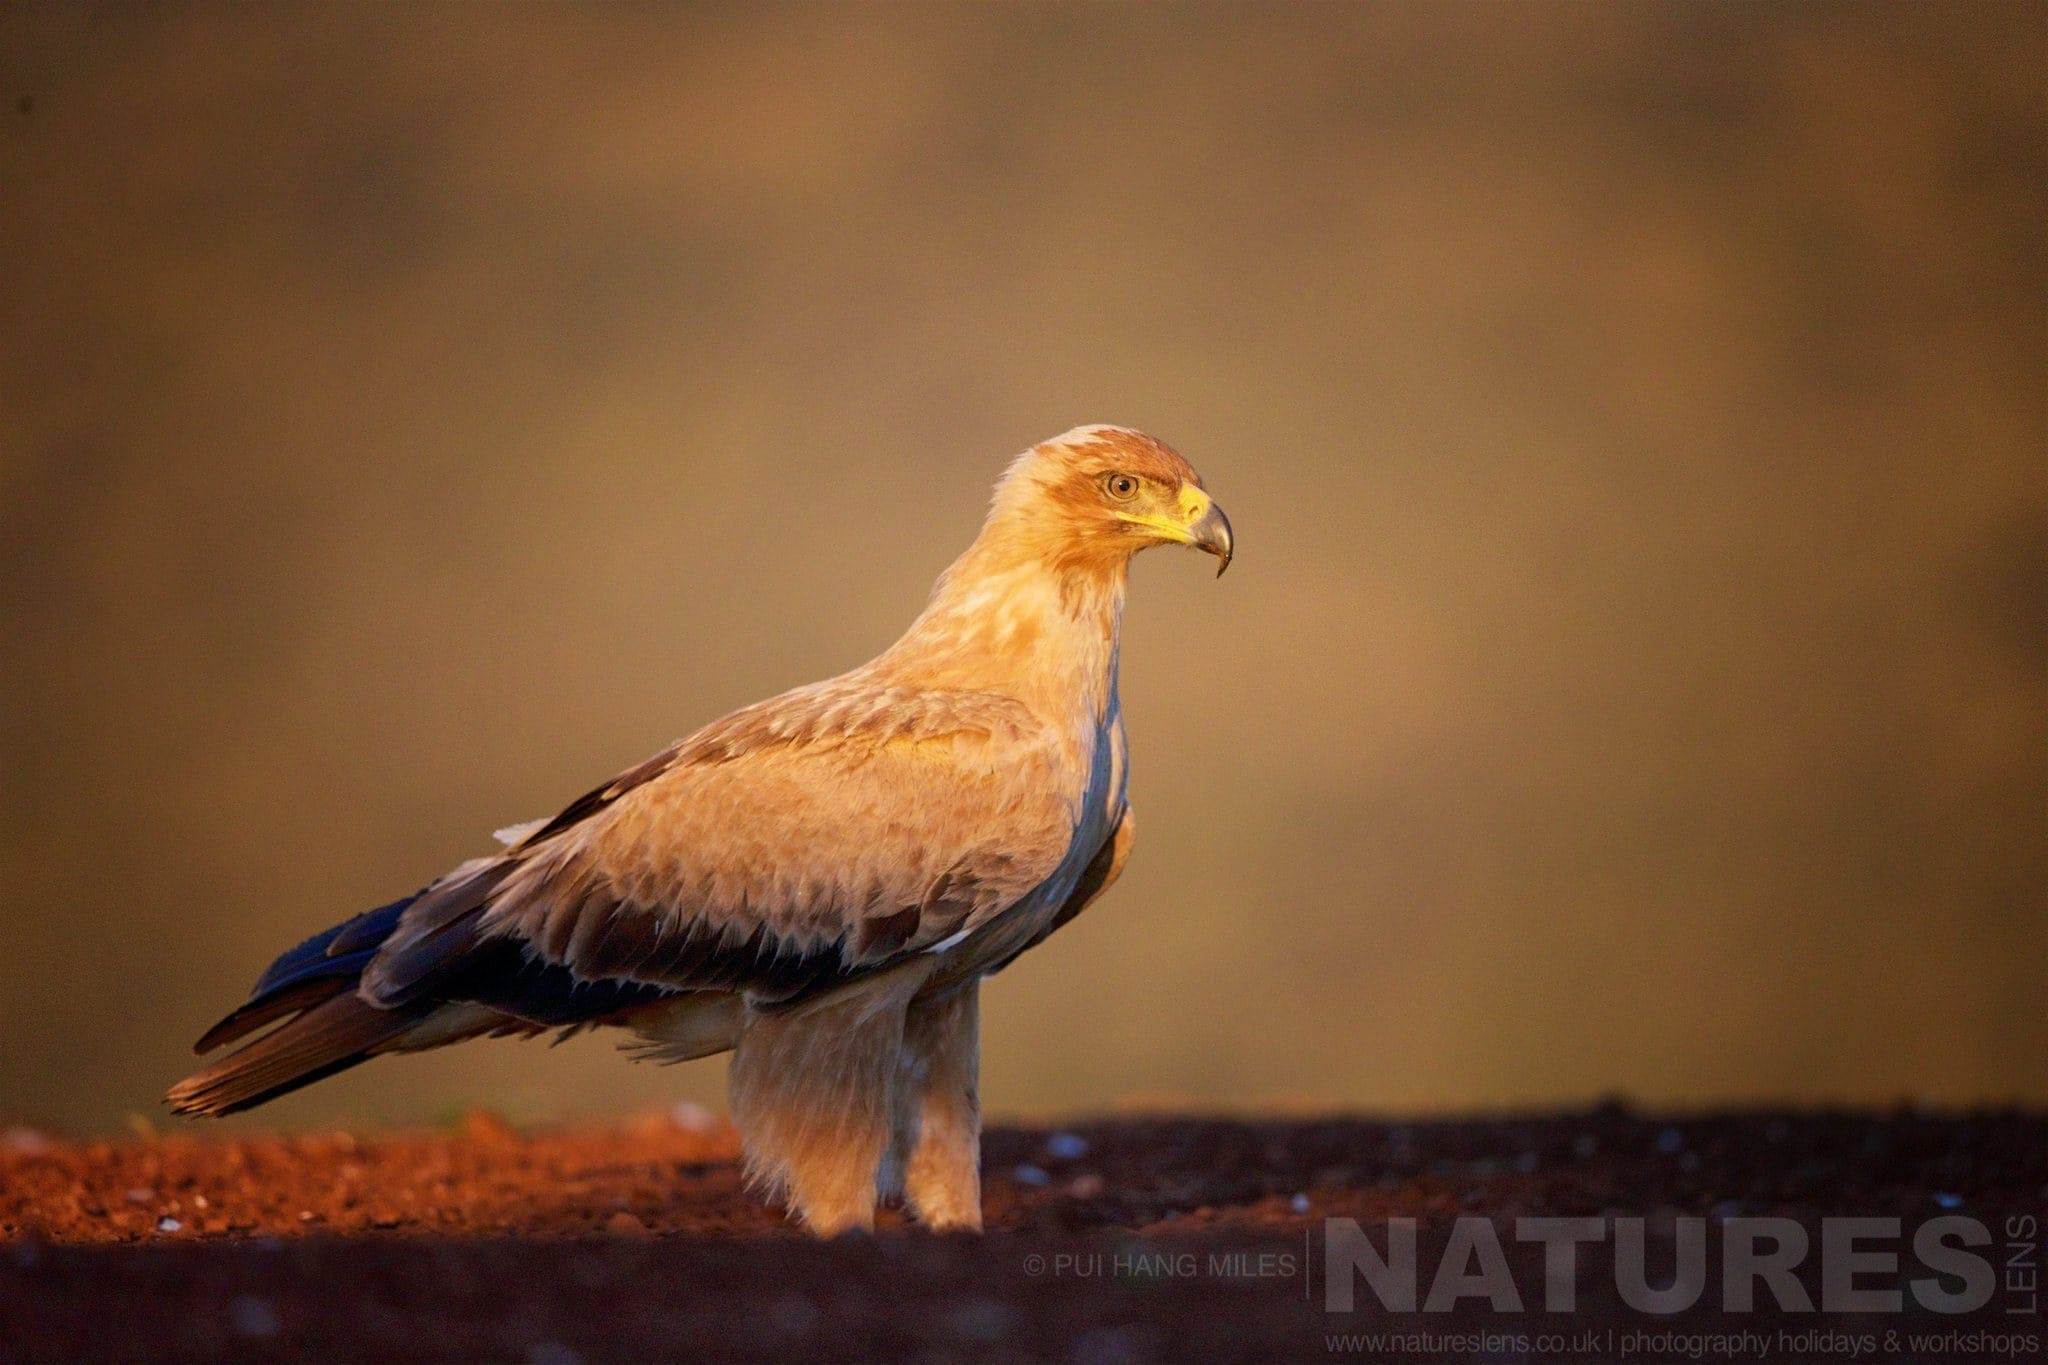 Tawny Eagle At Sunrise   Captured During The Natureslens African Wildlife Zimanga Photography Holiday